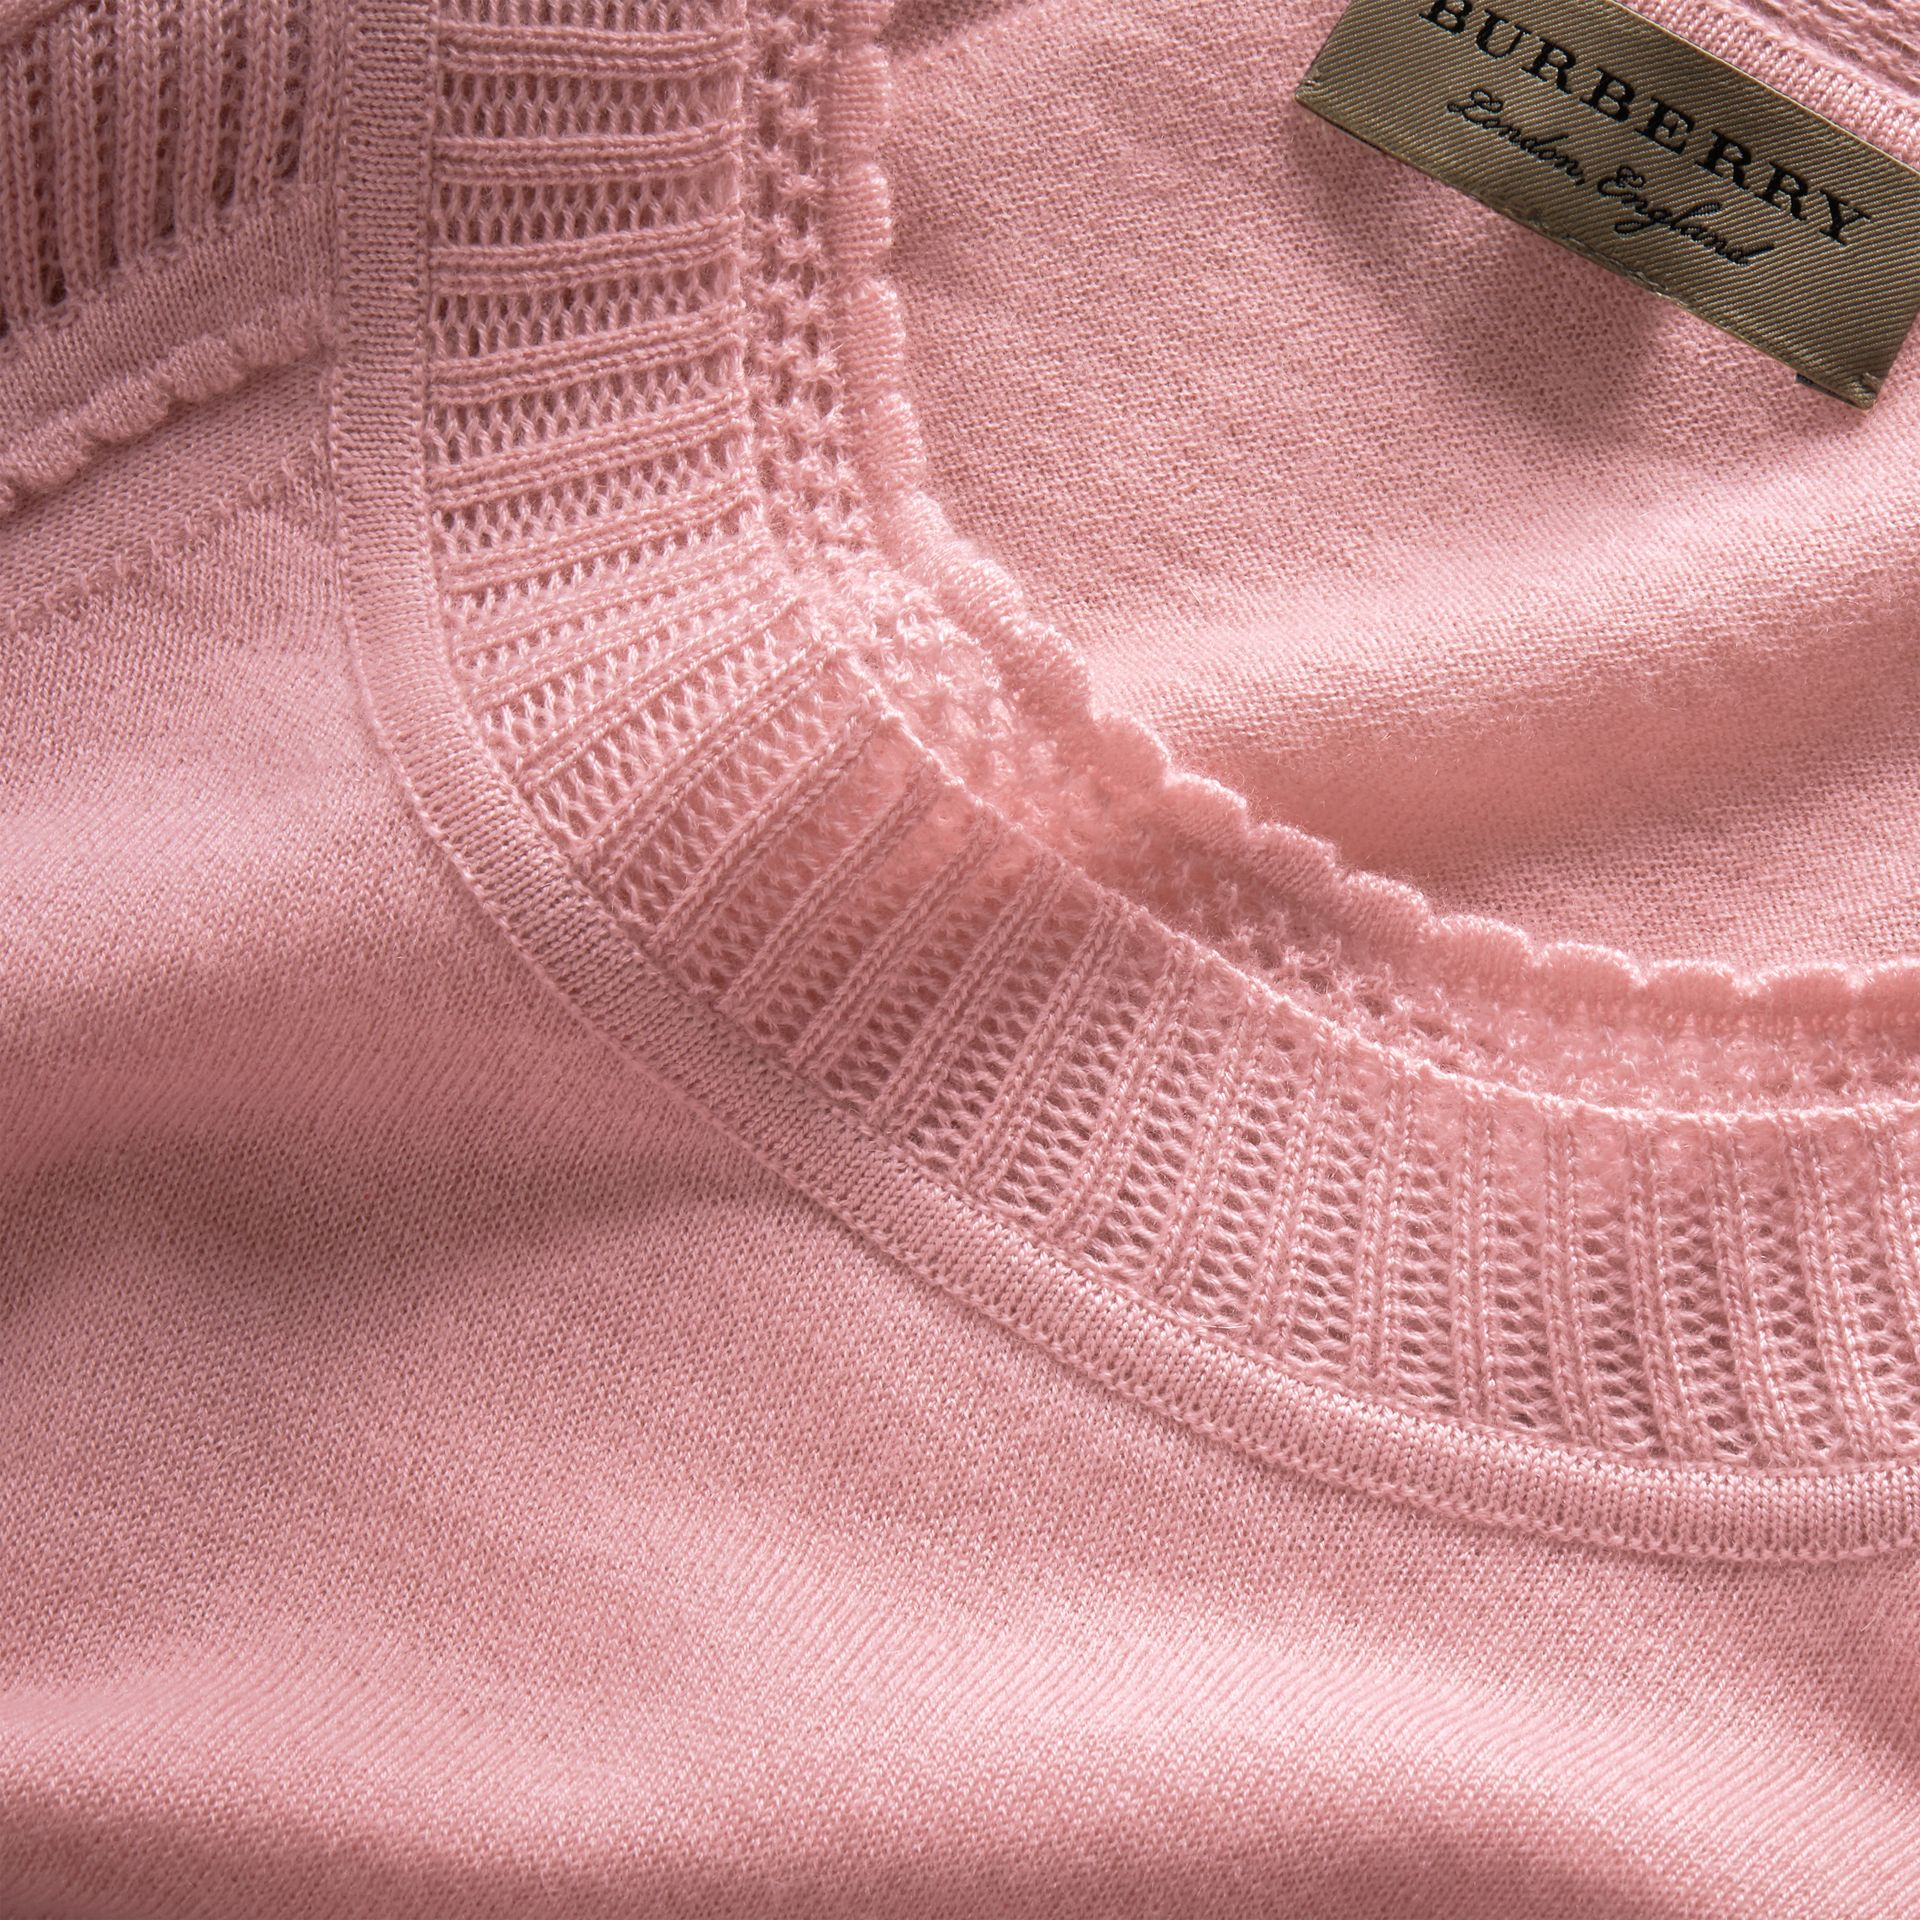 Open-knit Detail Cashmere Crew Neck Sweater in Apricot Pink - Women | Burberry - gallery image 2